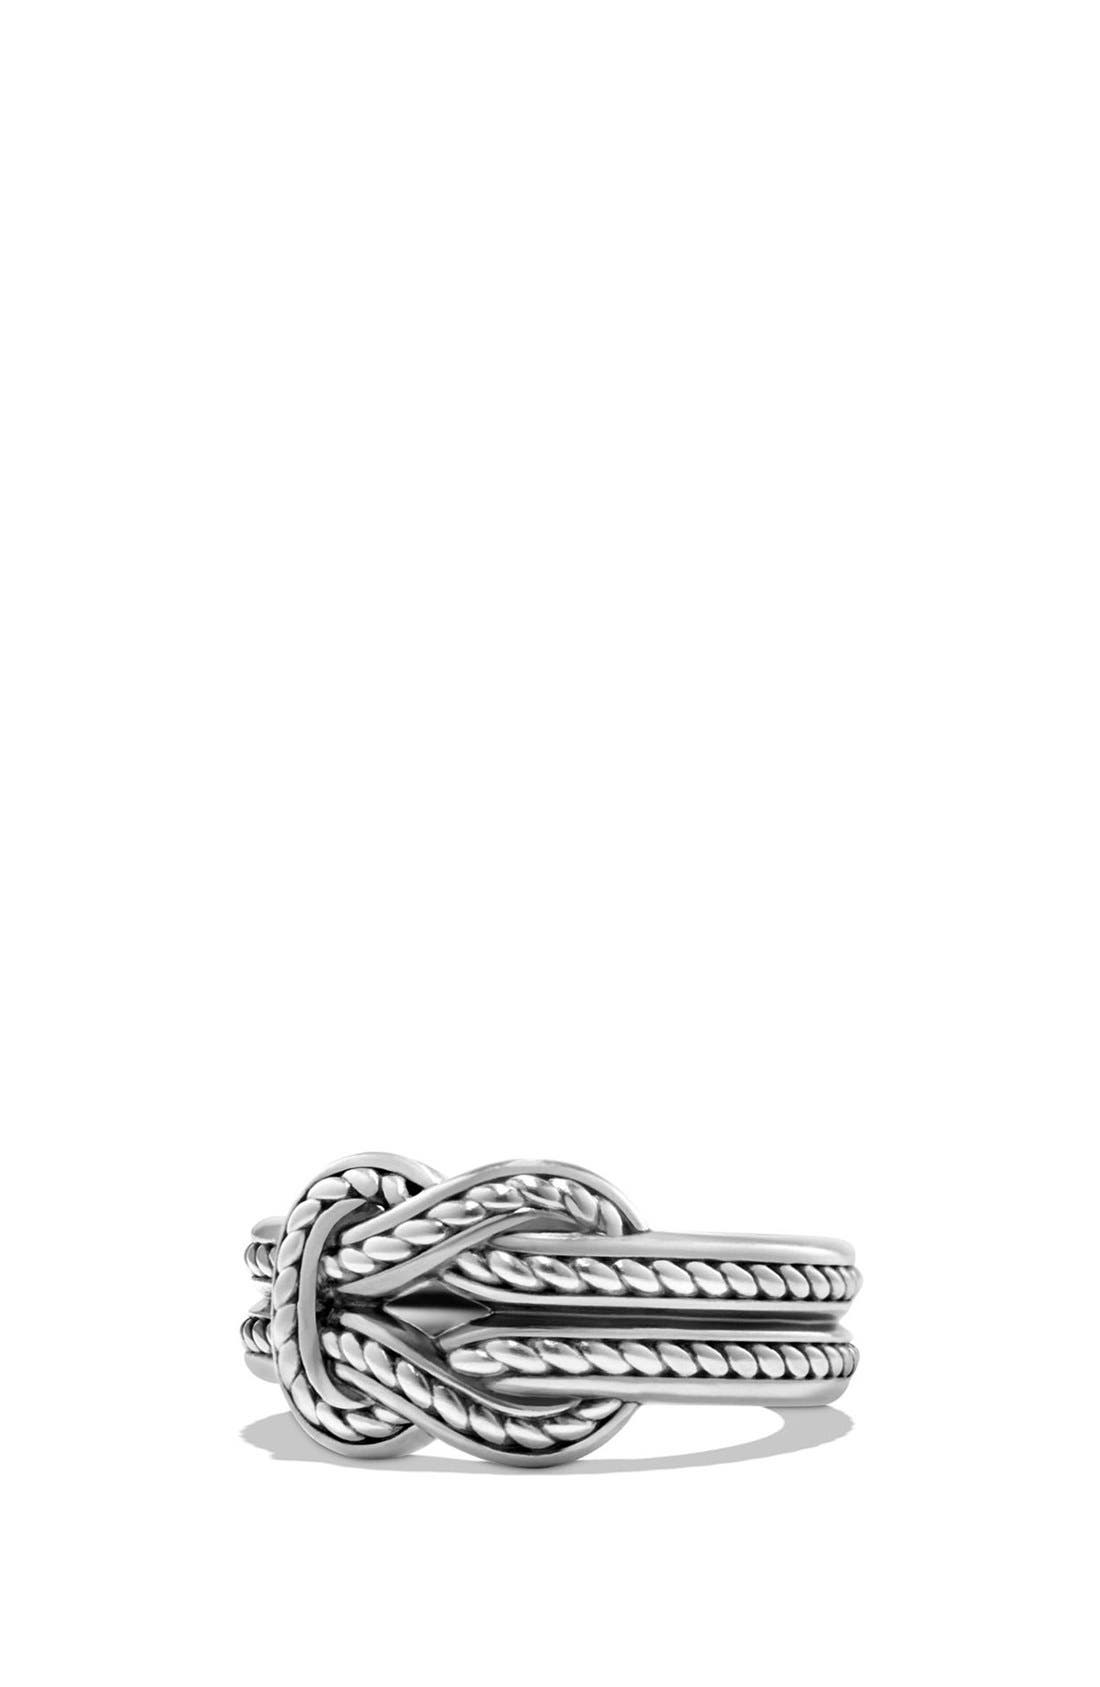 David Yurman 'Maritime' Reef Knot Band Ring